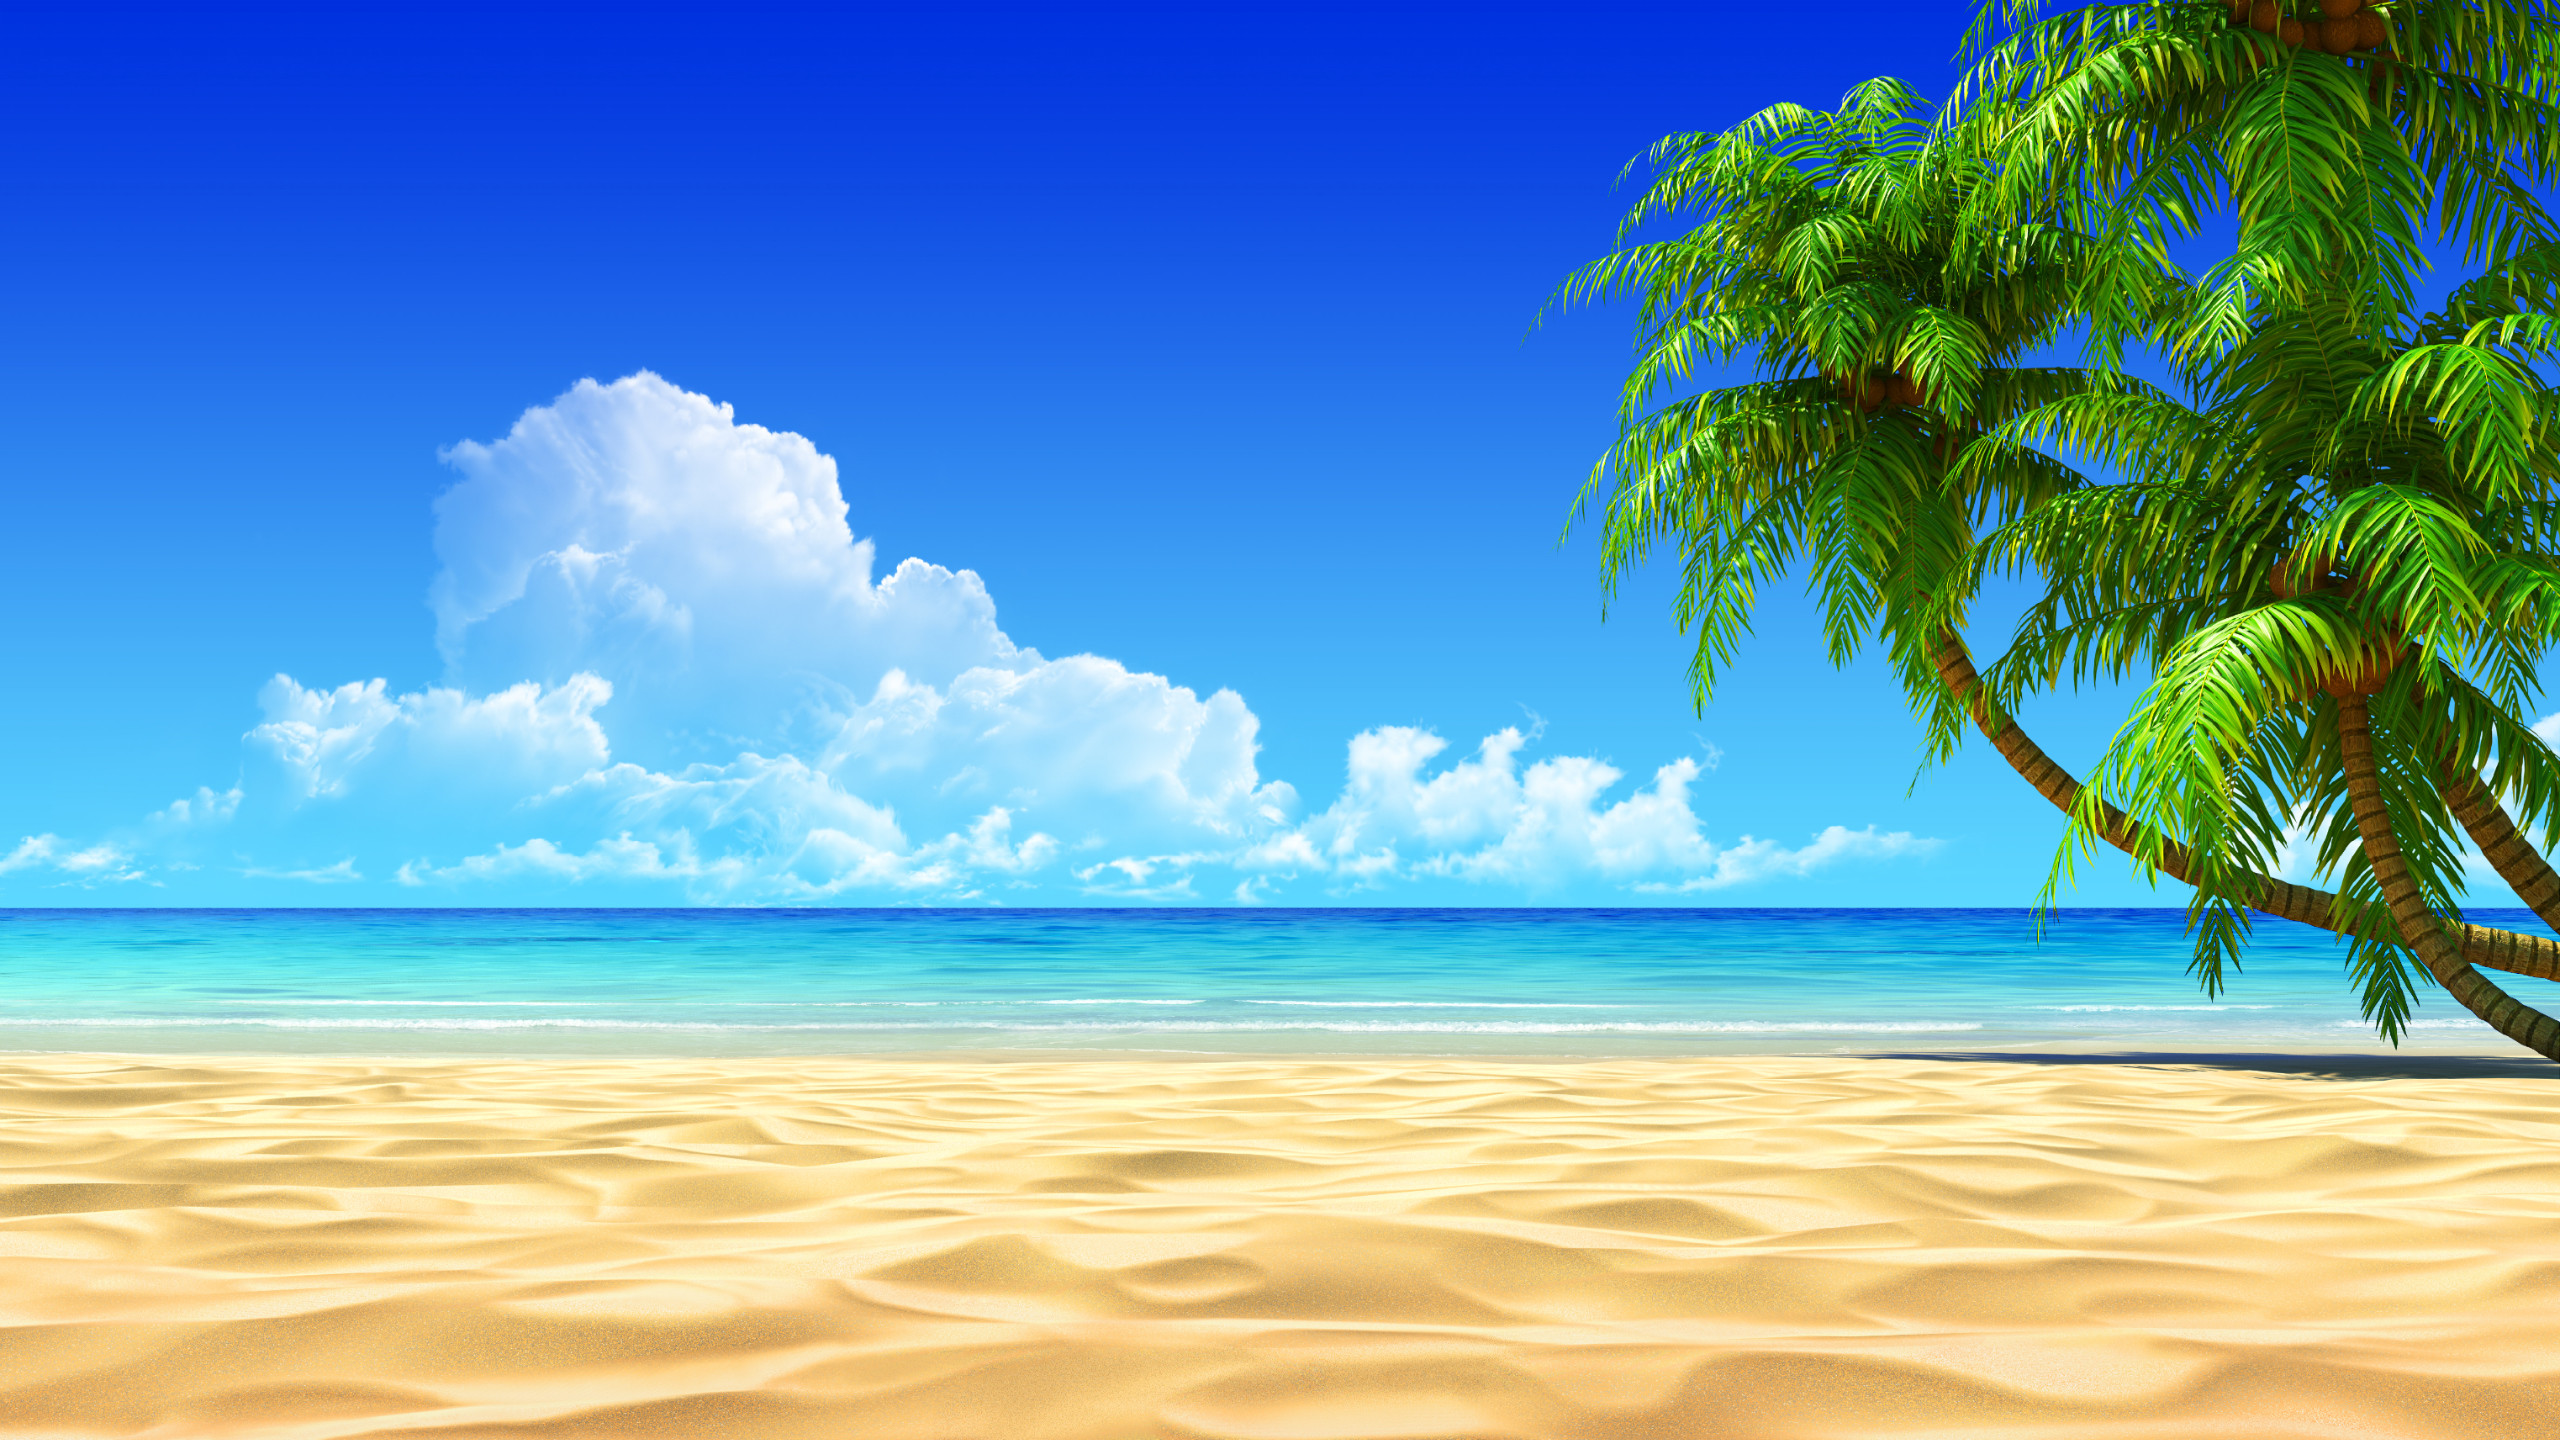 beach background wallpaper  61  images